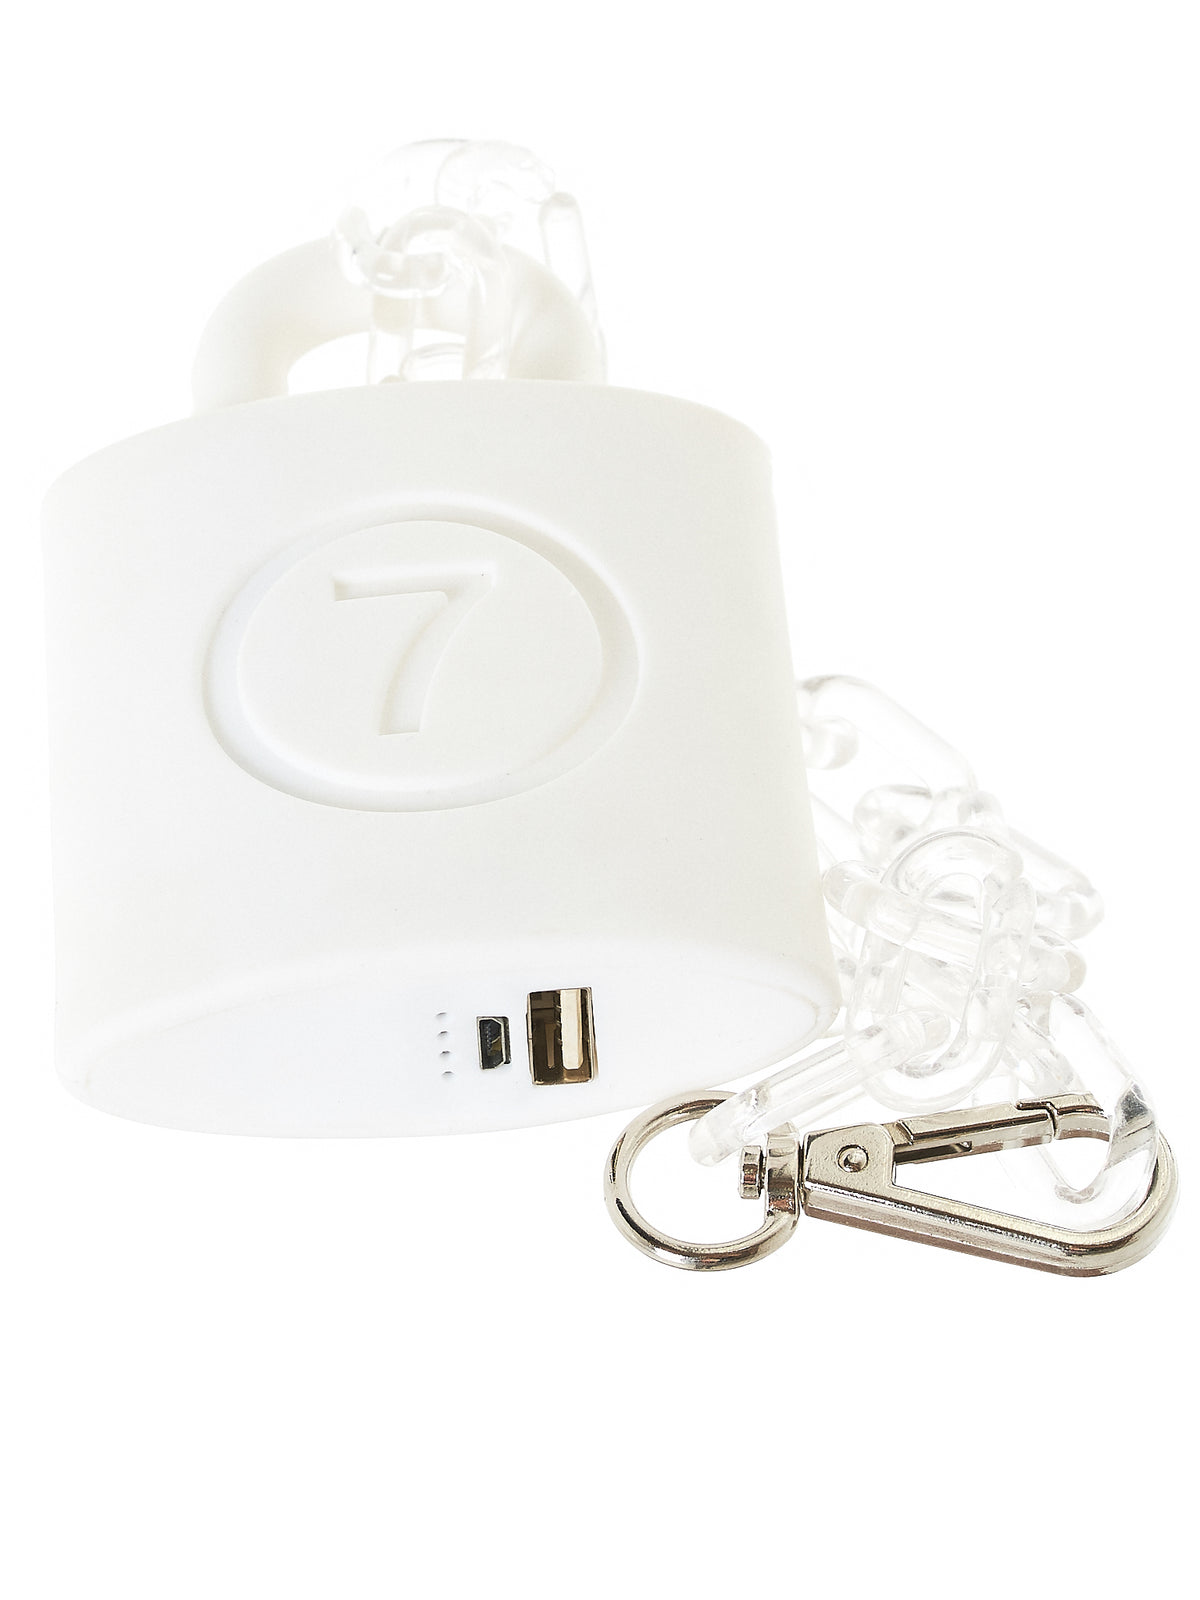 'Not A Pad Lock' Power Bank Charger (NA-015-NOT-A-PAD-LOCK-WHITE)